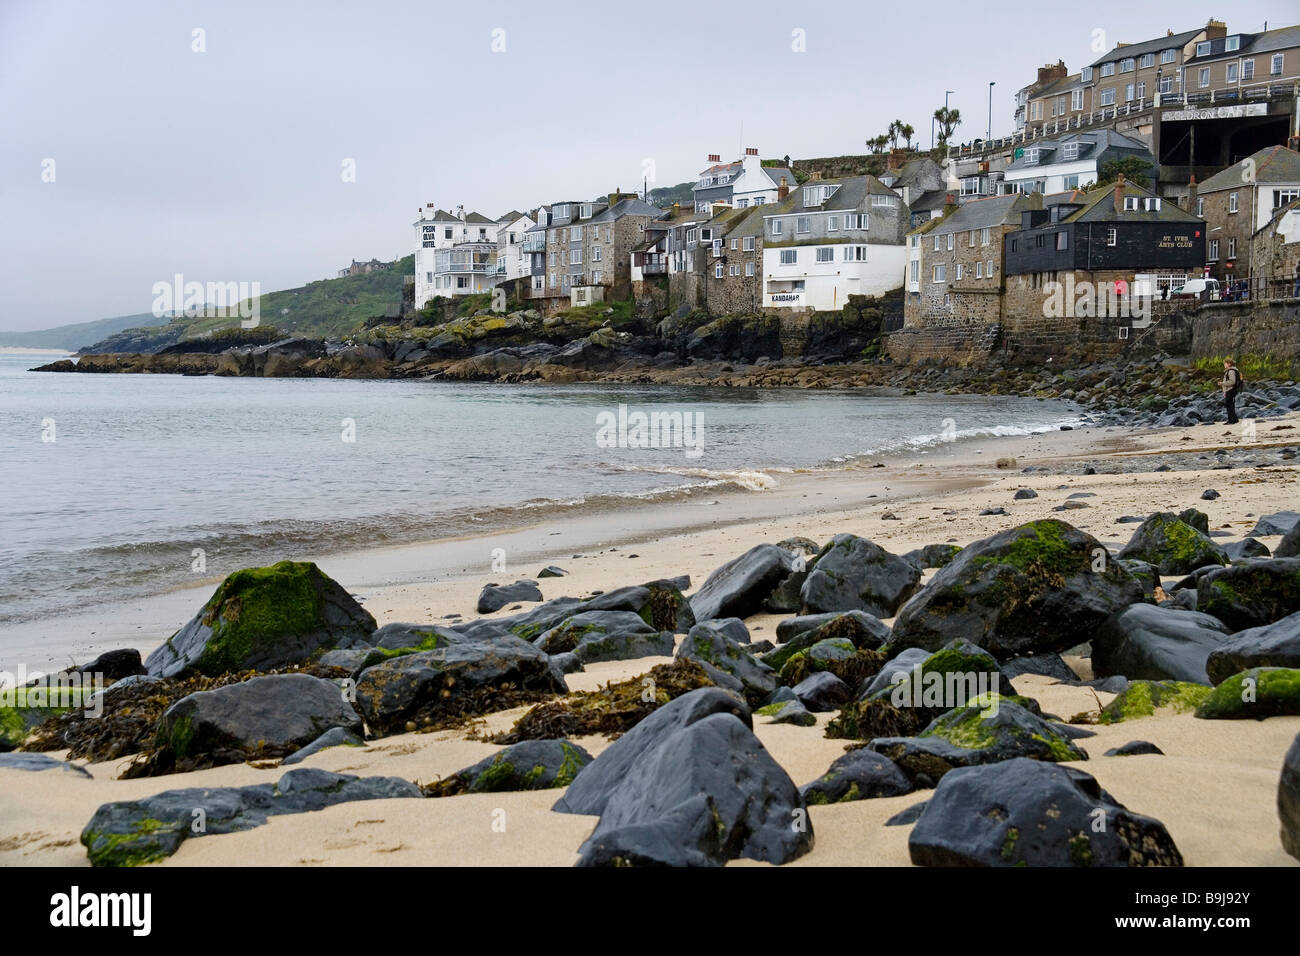 Coast of St. Ives, Cornwall, Great Britain, Europe Stock Photo